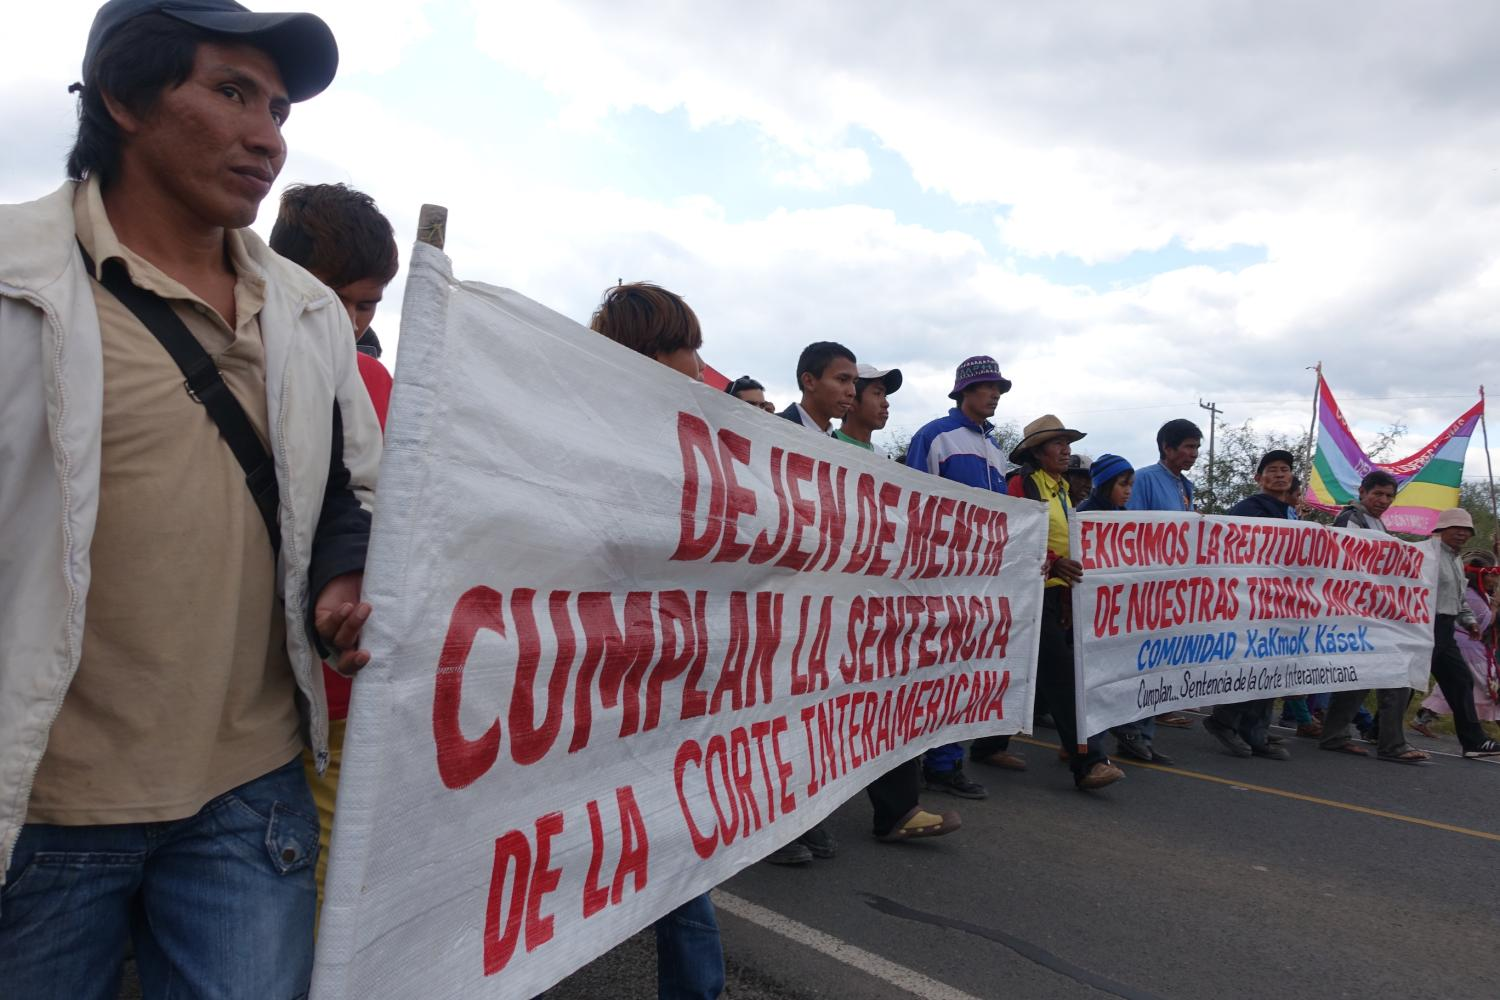 Protesters marching in the street, holding banners